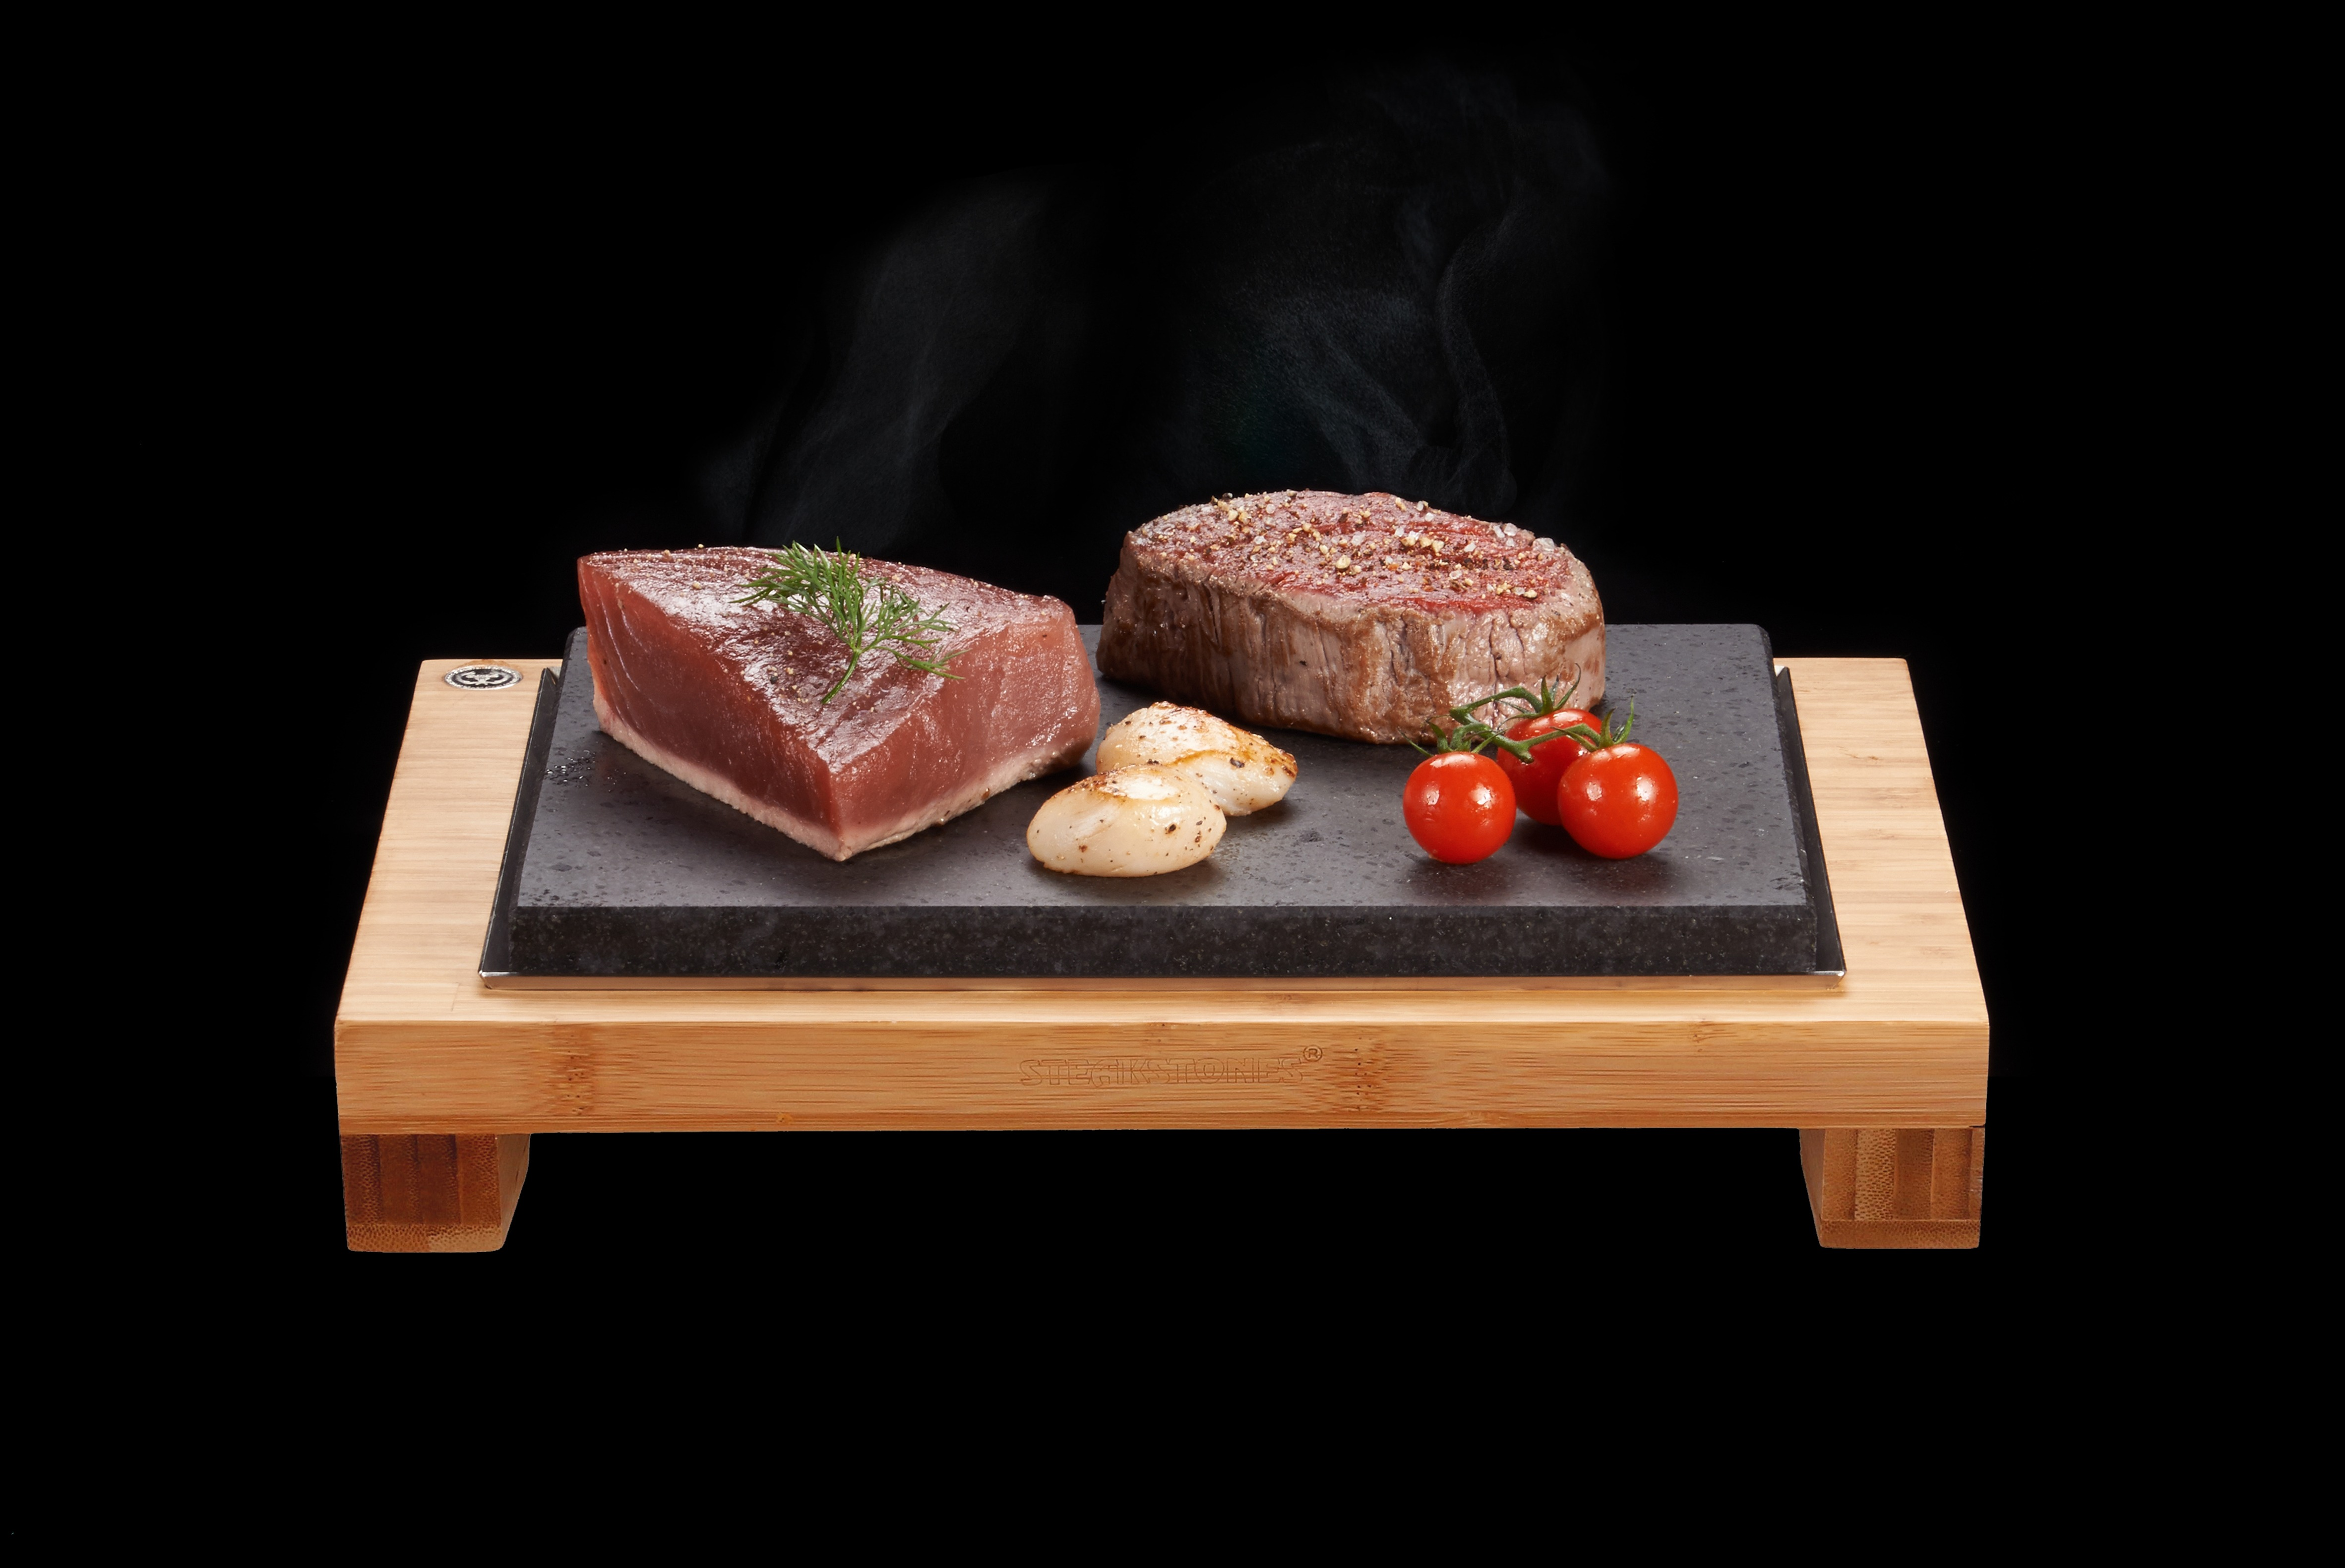 Share some delicious cuts of Steak with the Raised Sharing Steak Plate. The Perfect Meal for Two. The Raised Steak Sharer featuring Fillet Steak, Scallops and Tuna Sizzling on Steak on a Stone Lava Rocks Cooking Products. The best stone grill cooking products guaranteed.